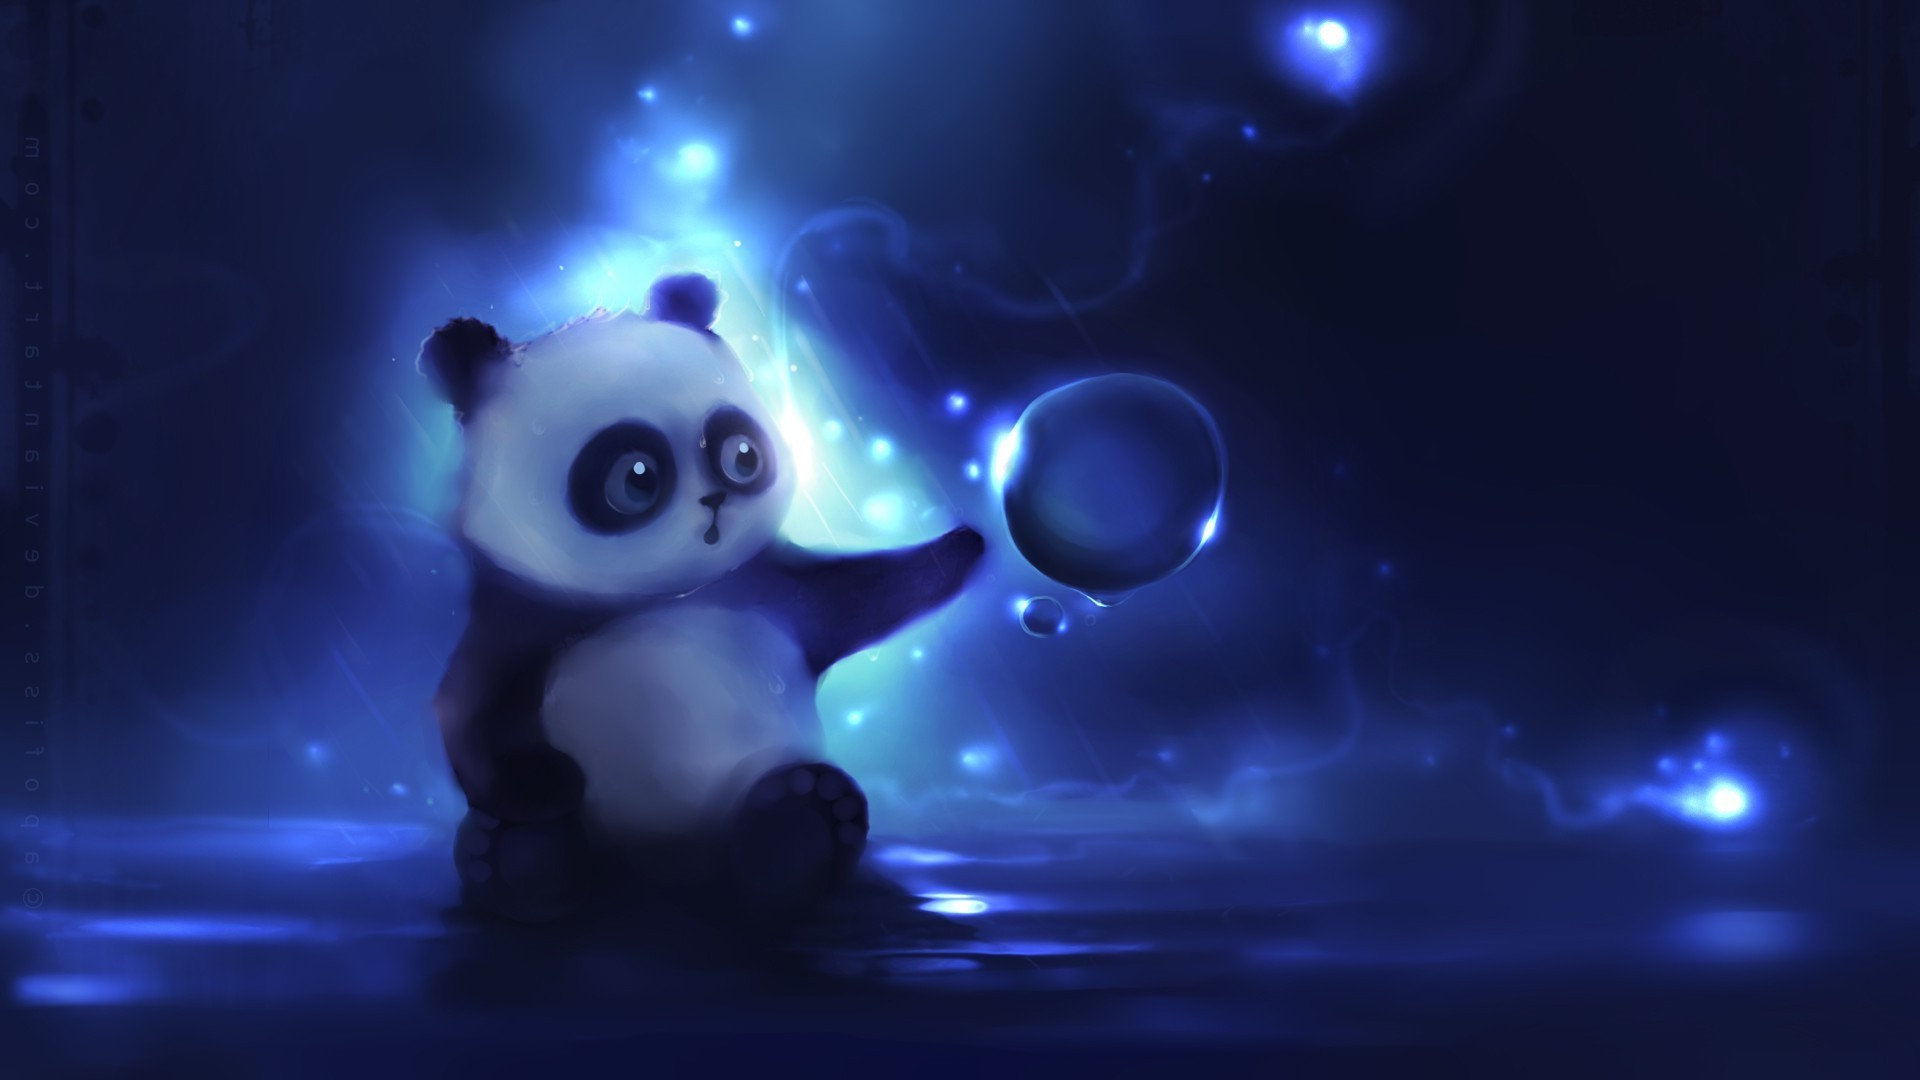 Drawn wallpaper cute animated animal Anime Cute 122 Animal Download